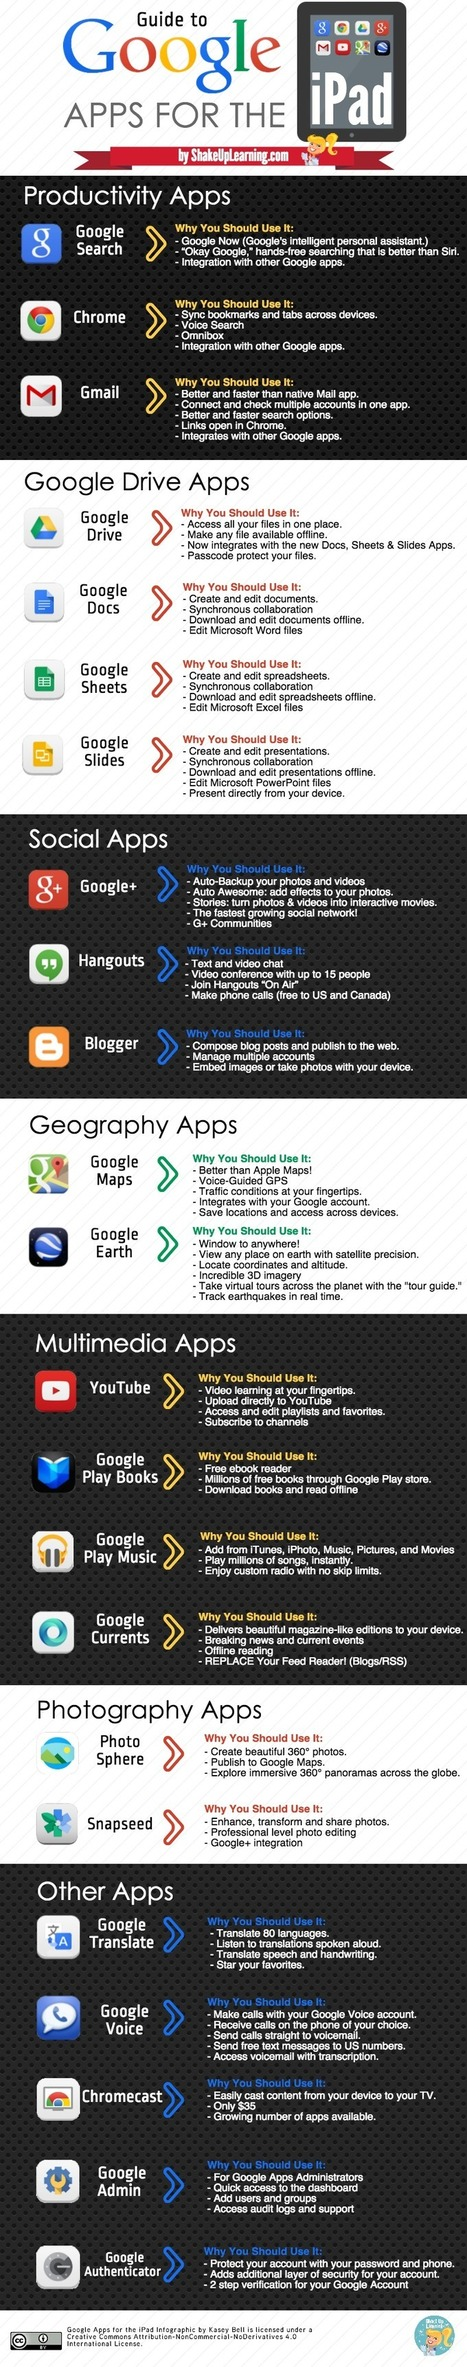 Guide to Google Apps for the iPad - Infographic | School Libraries Leading Information Literacy | Scoop.it